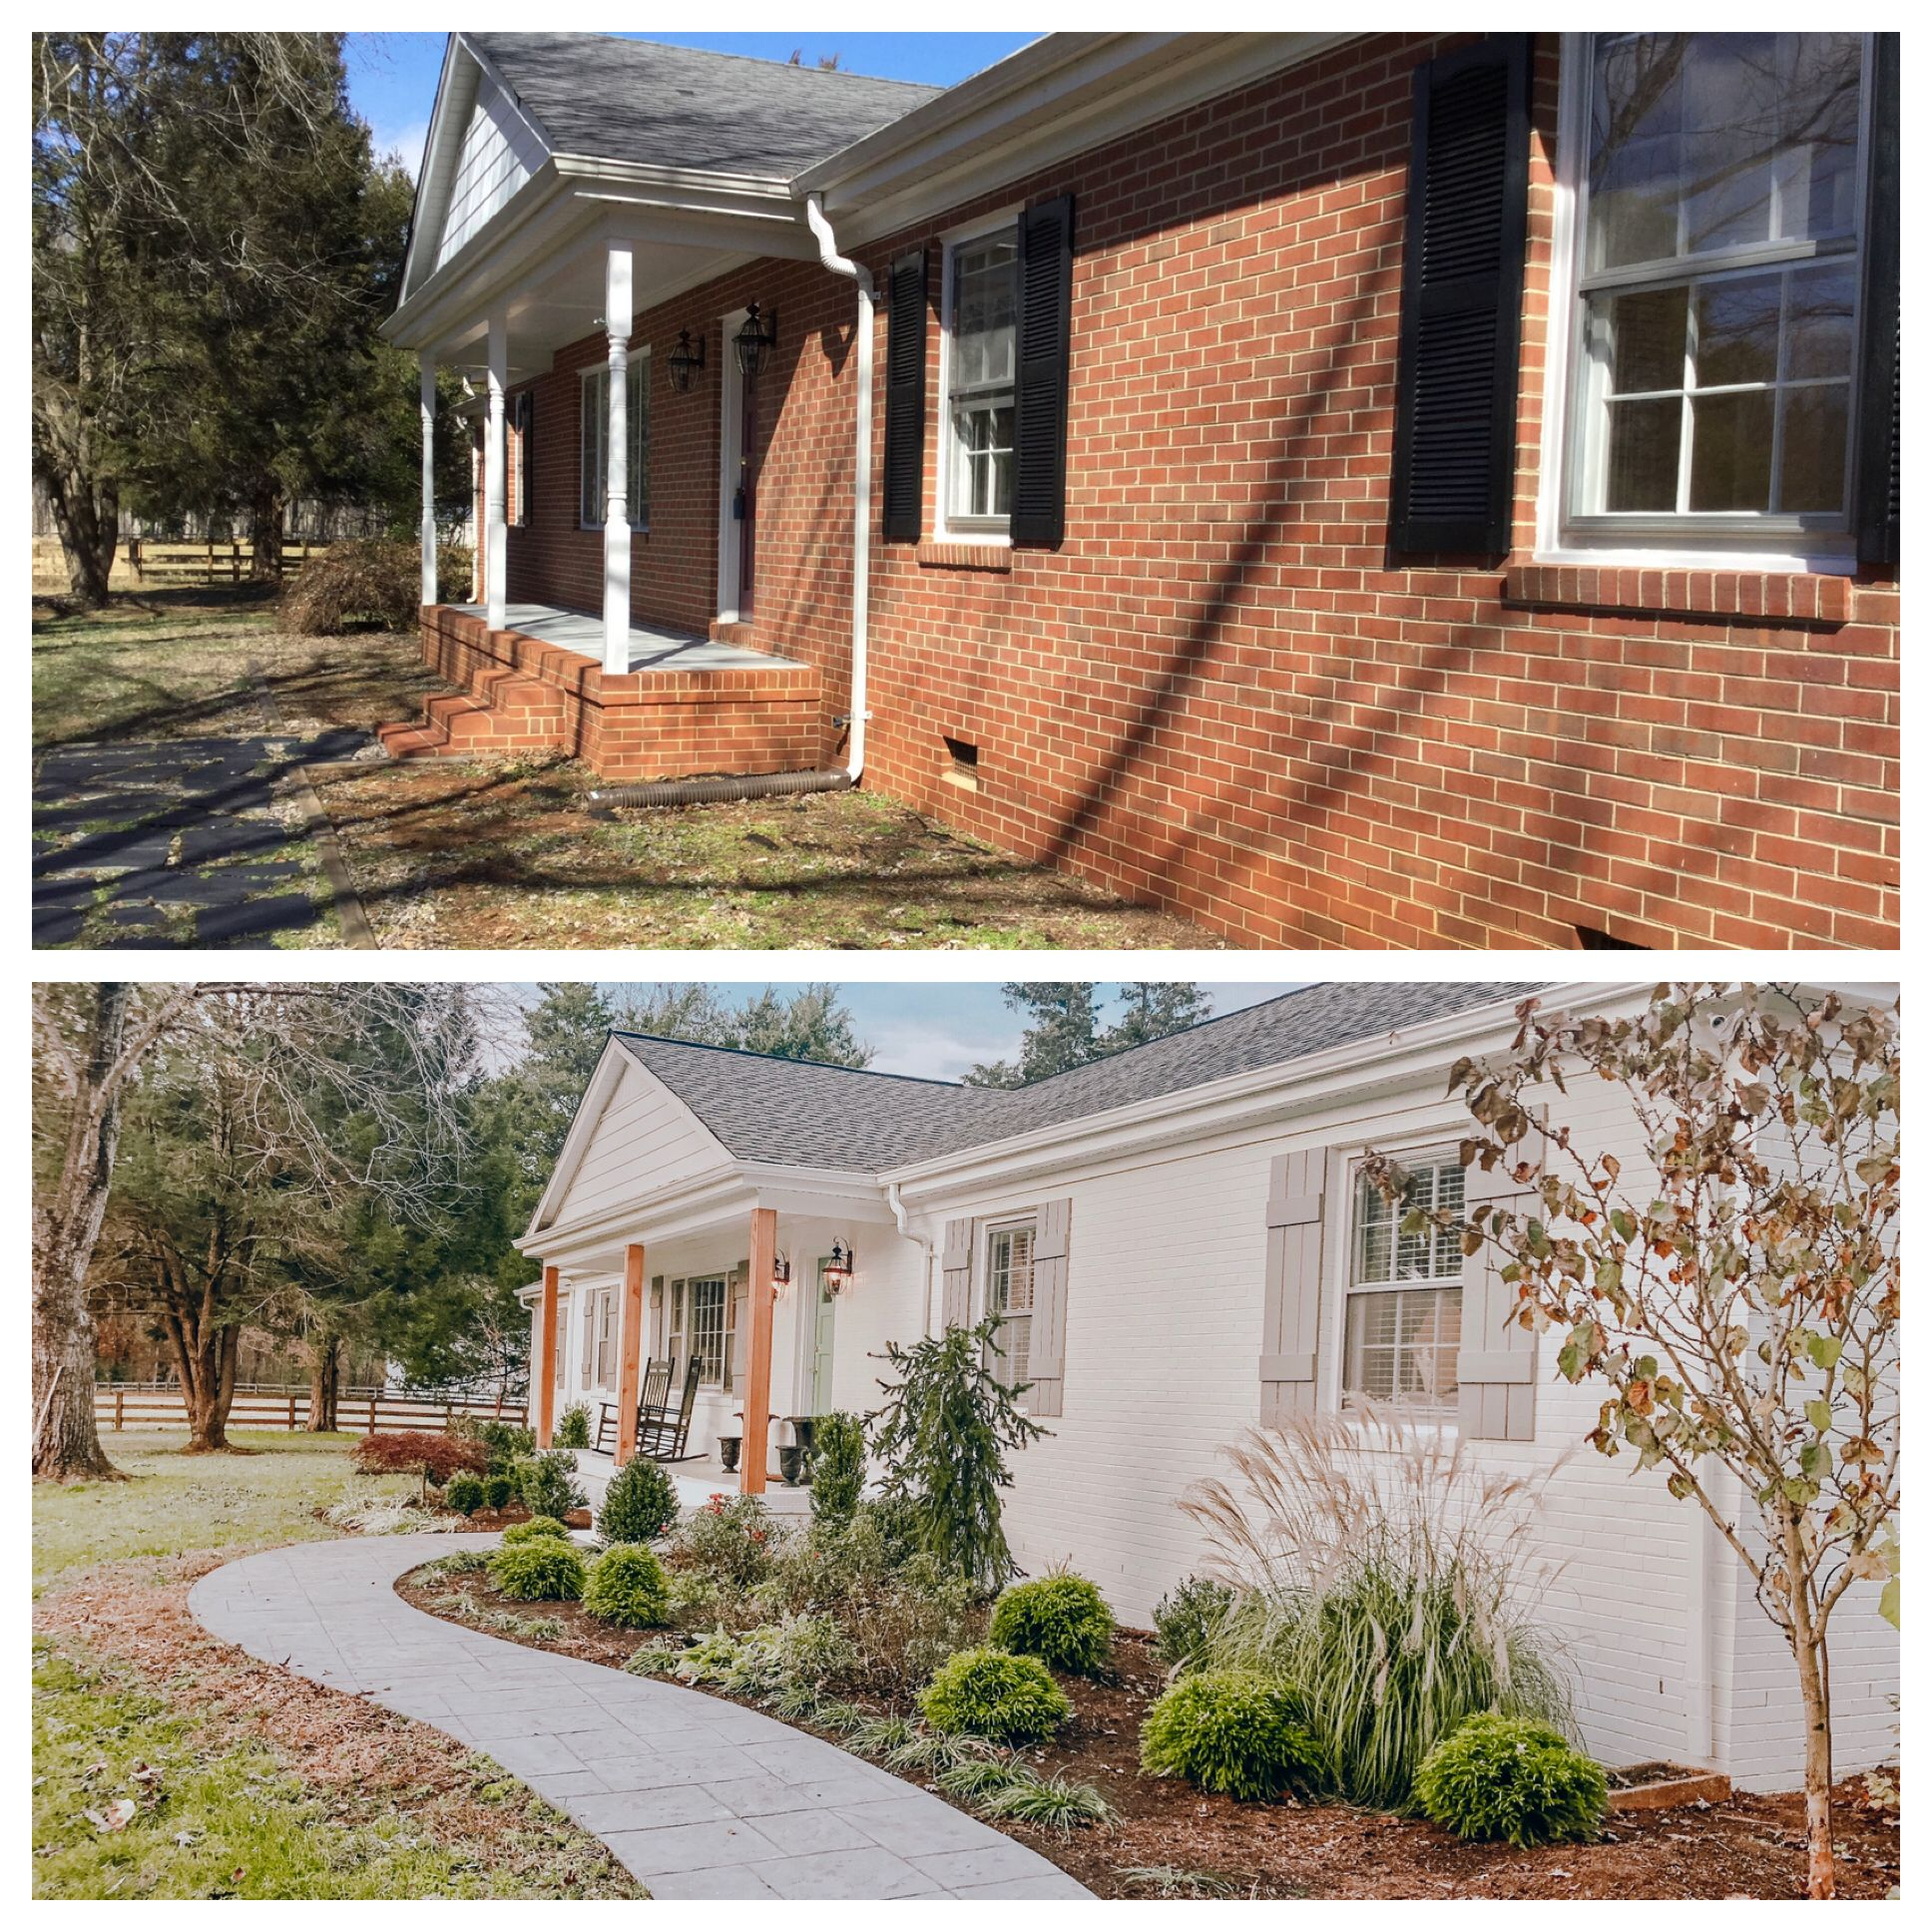 Before And After Painted The Brick White Built New Shutters And